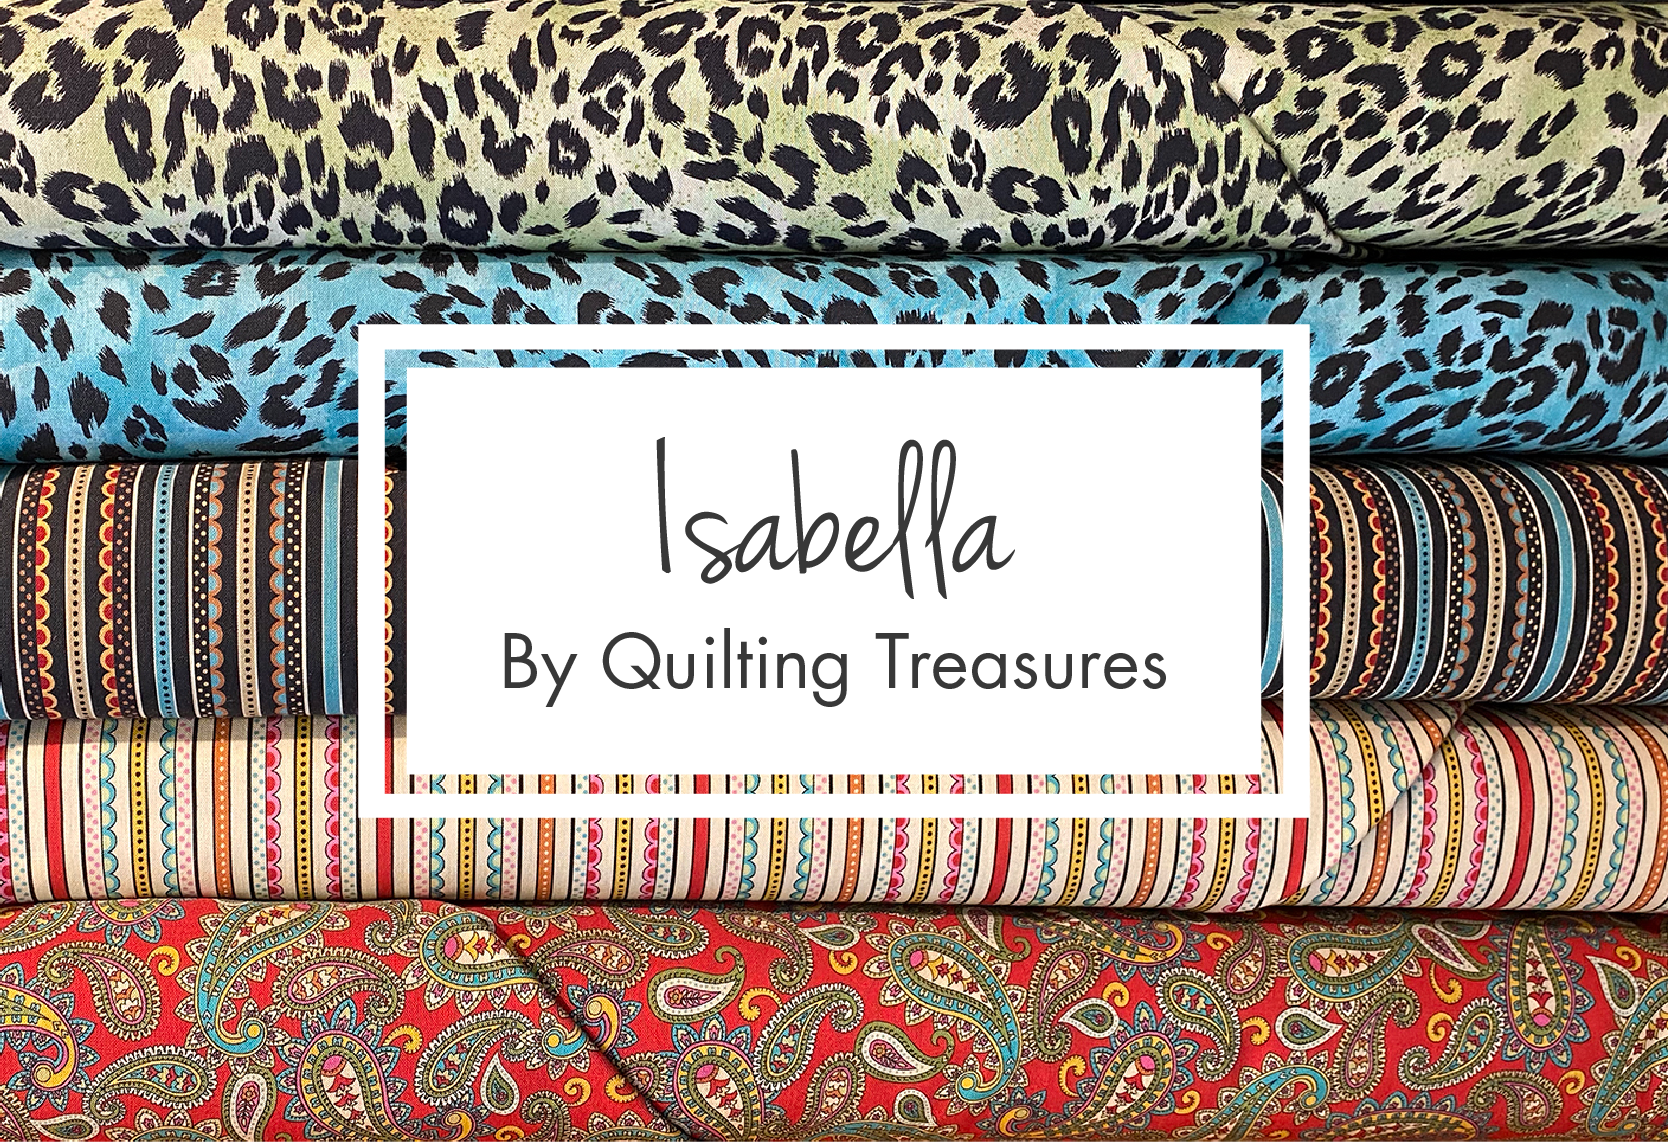 Isabella by Quilting Treasures